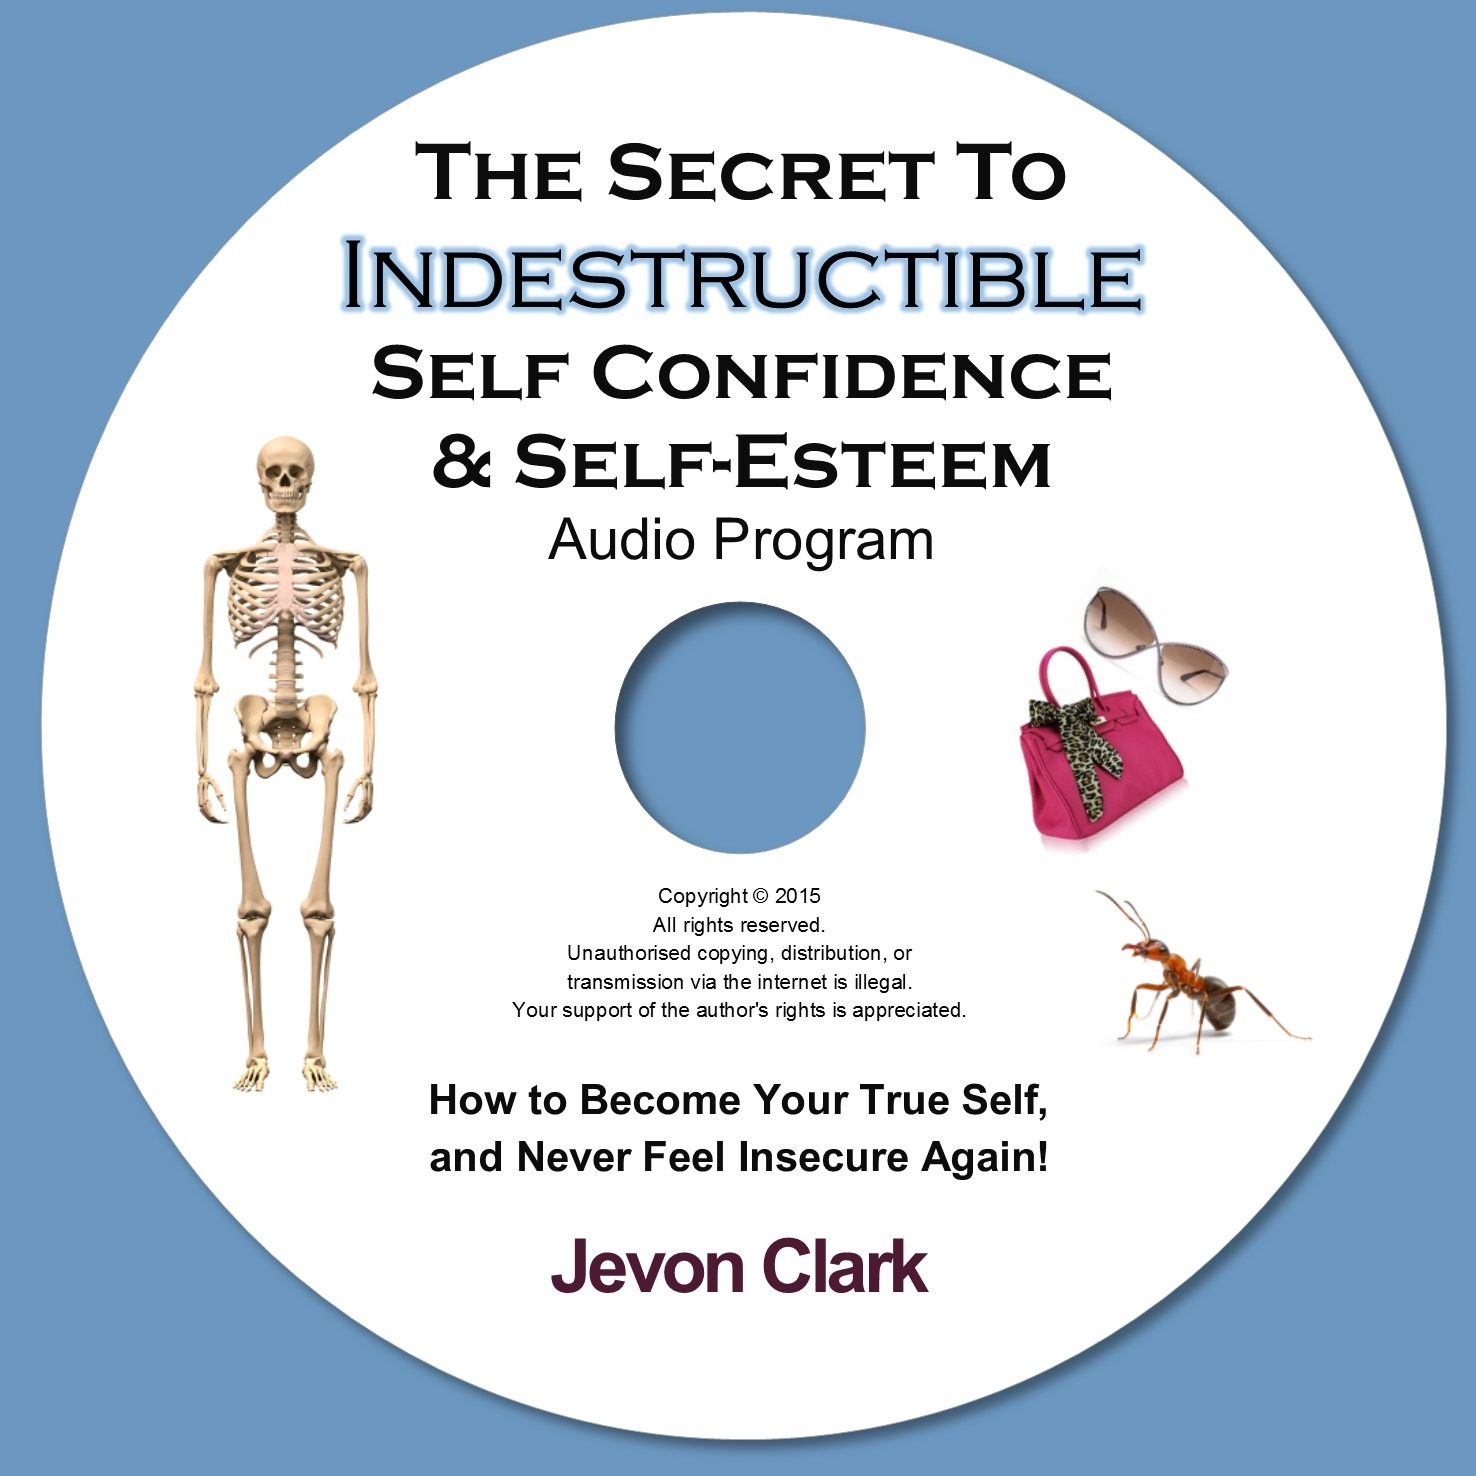 The Secret to Indestructible Self-Esteem Audio Program.